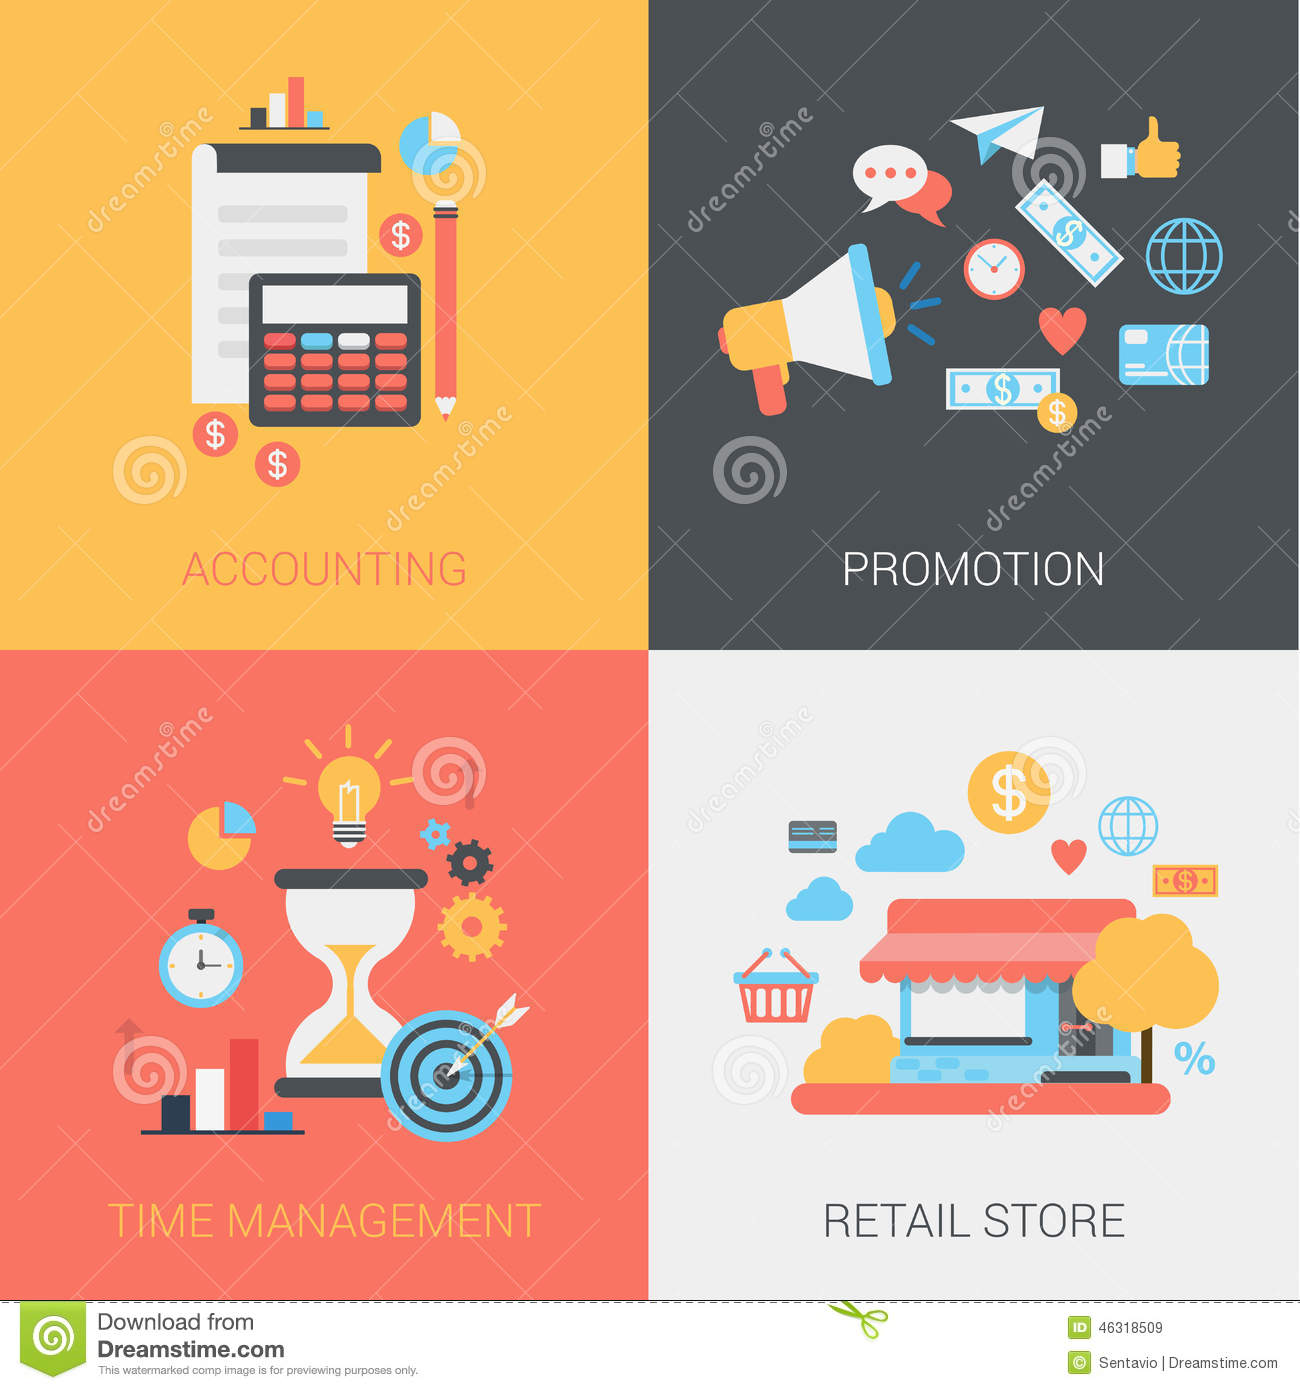 Accounting Promotion Time Management Store Flat Web